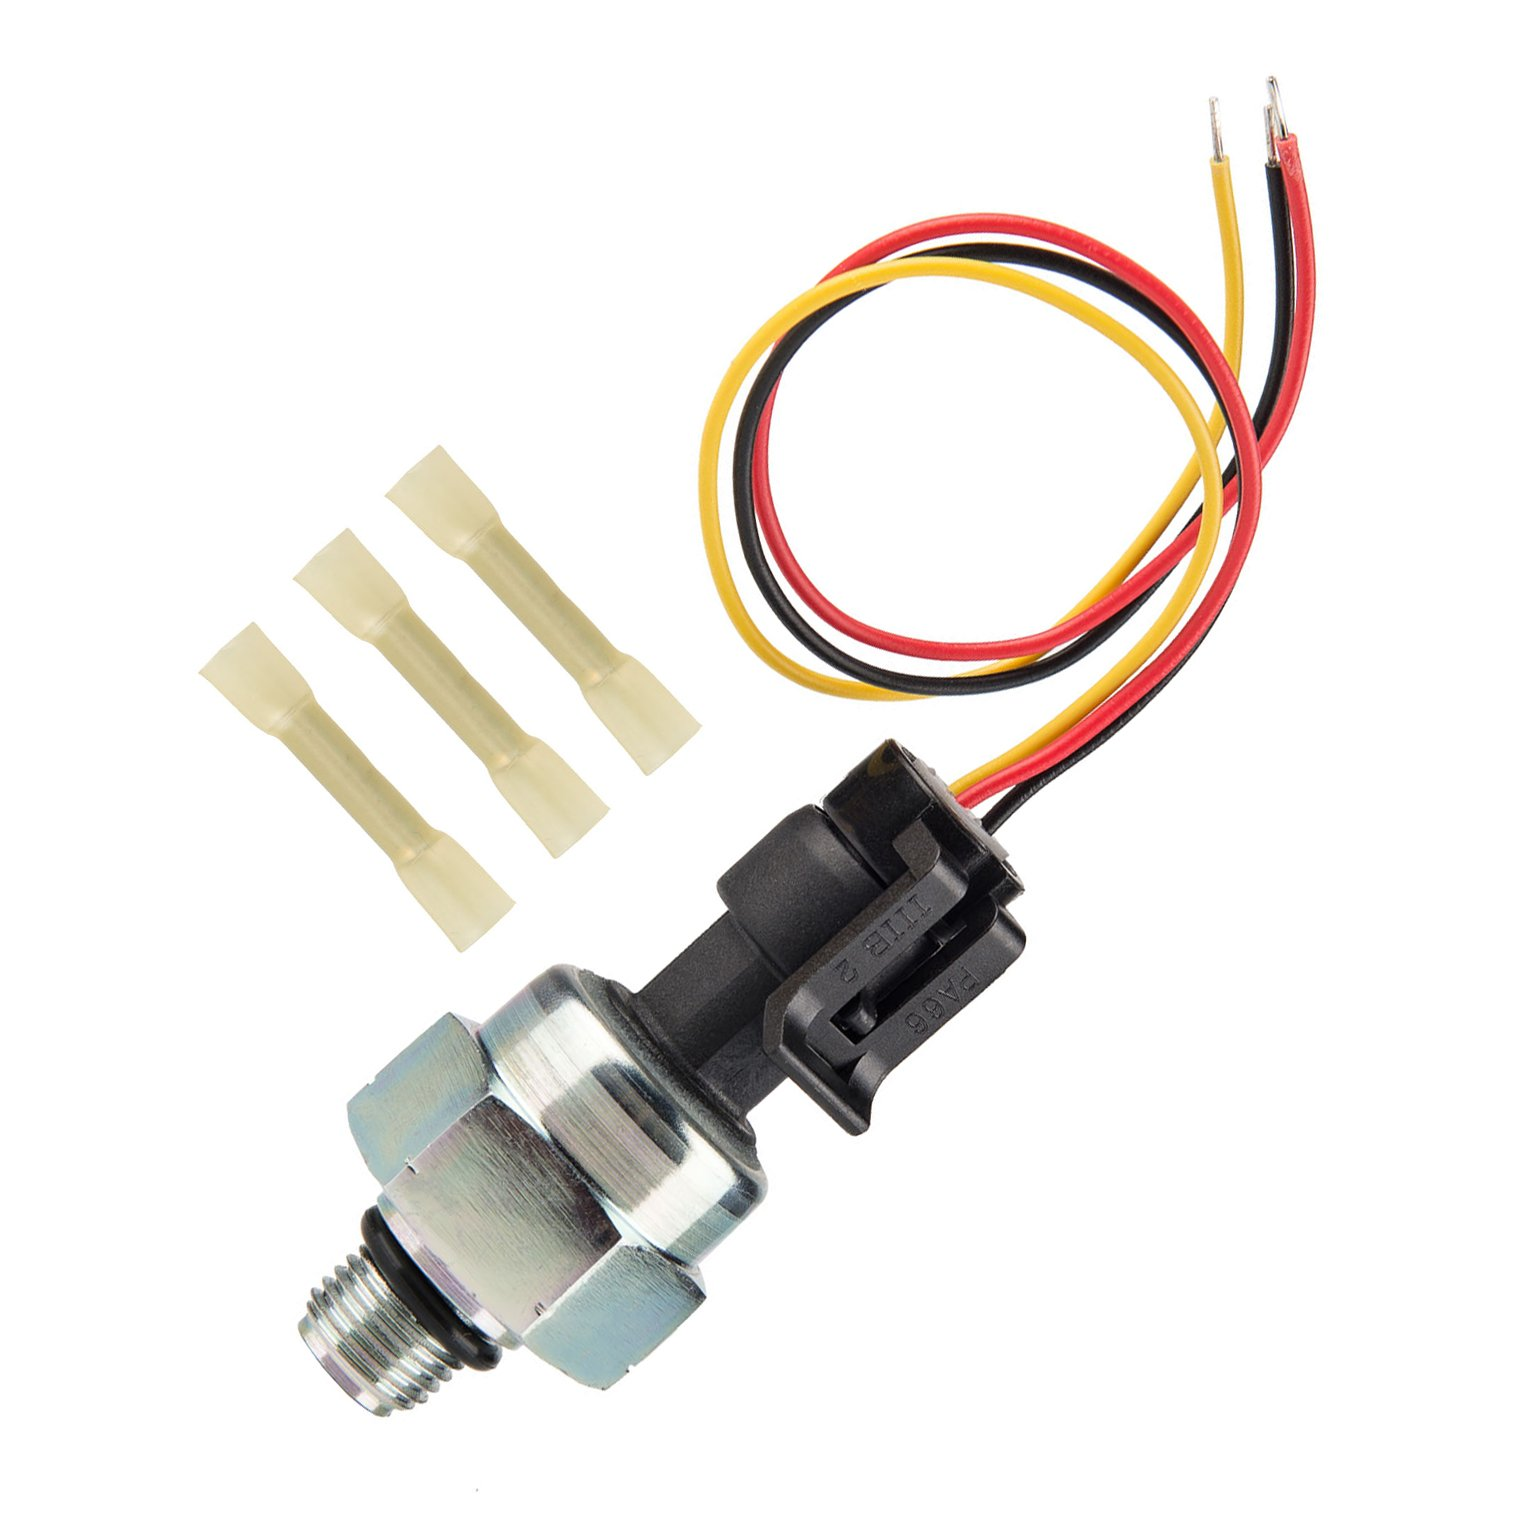 7.3 ICP Sensor for 1997-2003 Ford 7.3L Diesel Engines Powerstroke, Injection Control Pressure Sensor + Pigtail Connectors Harness